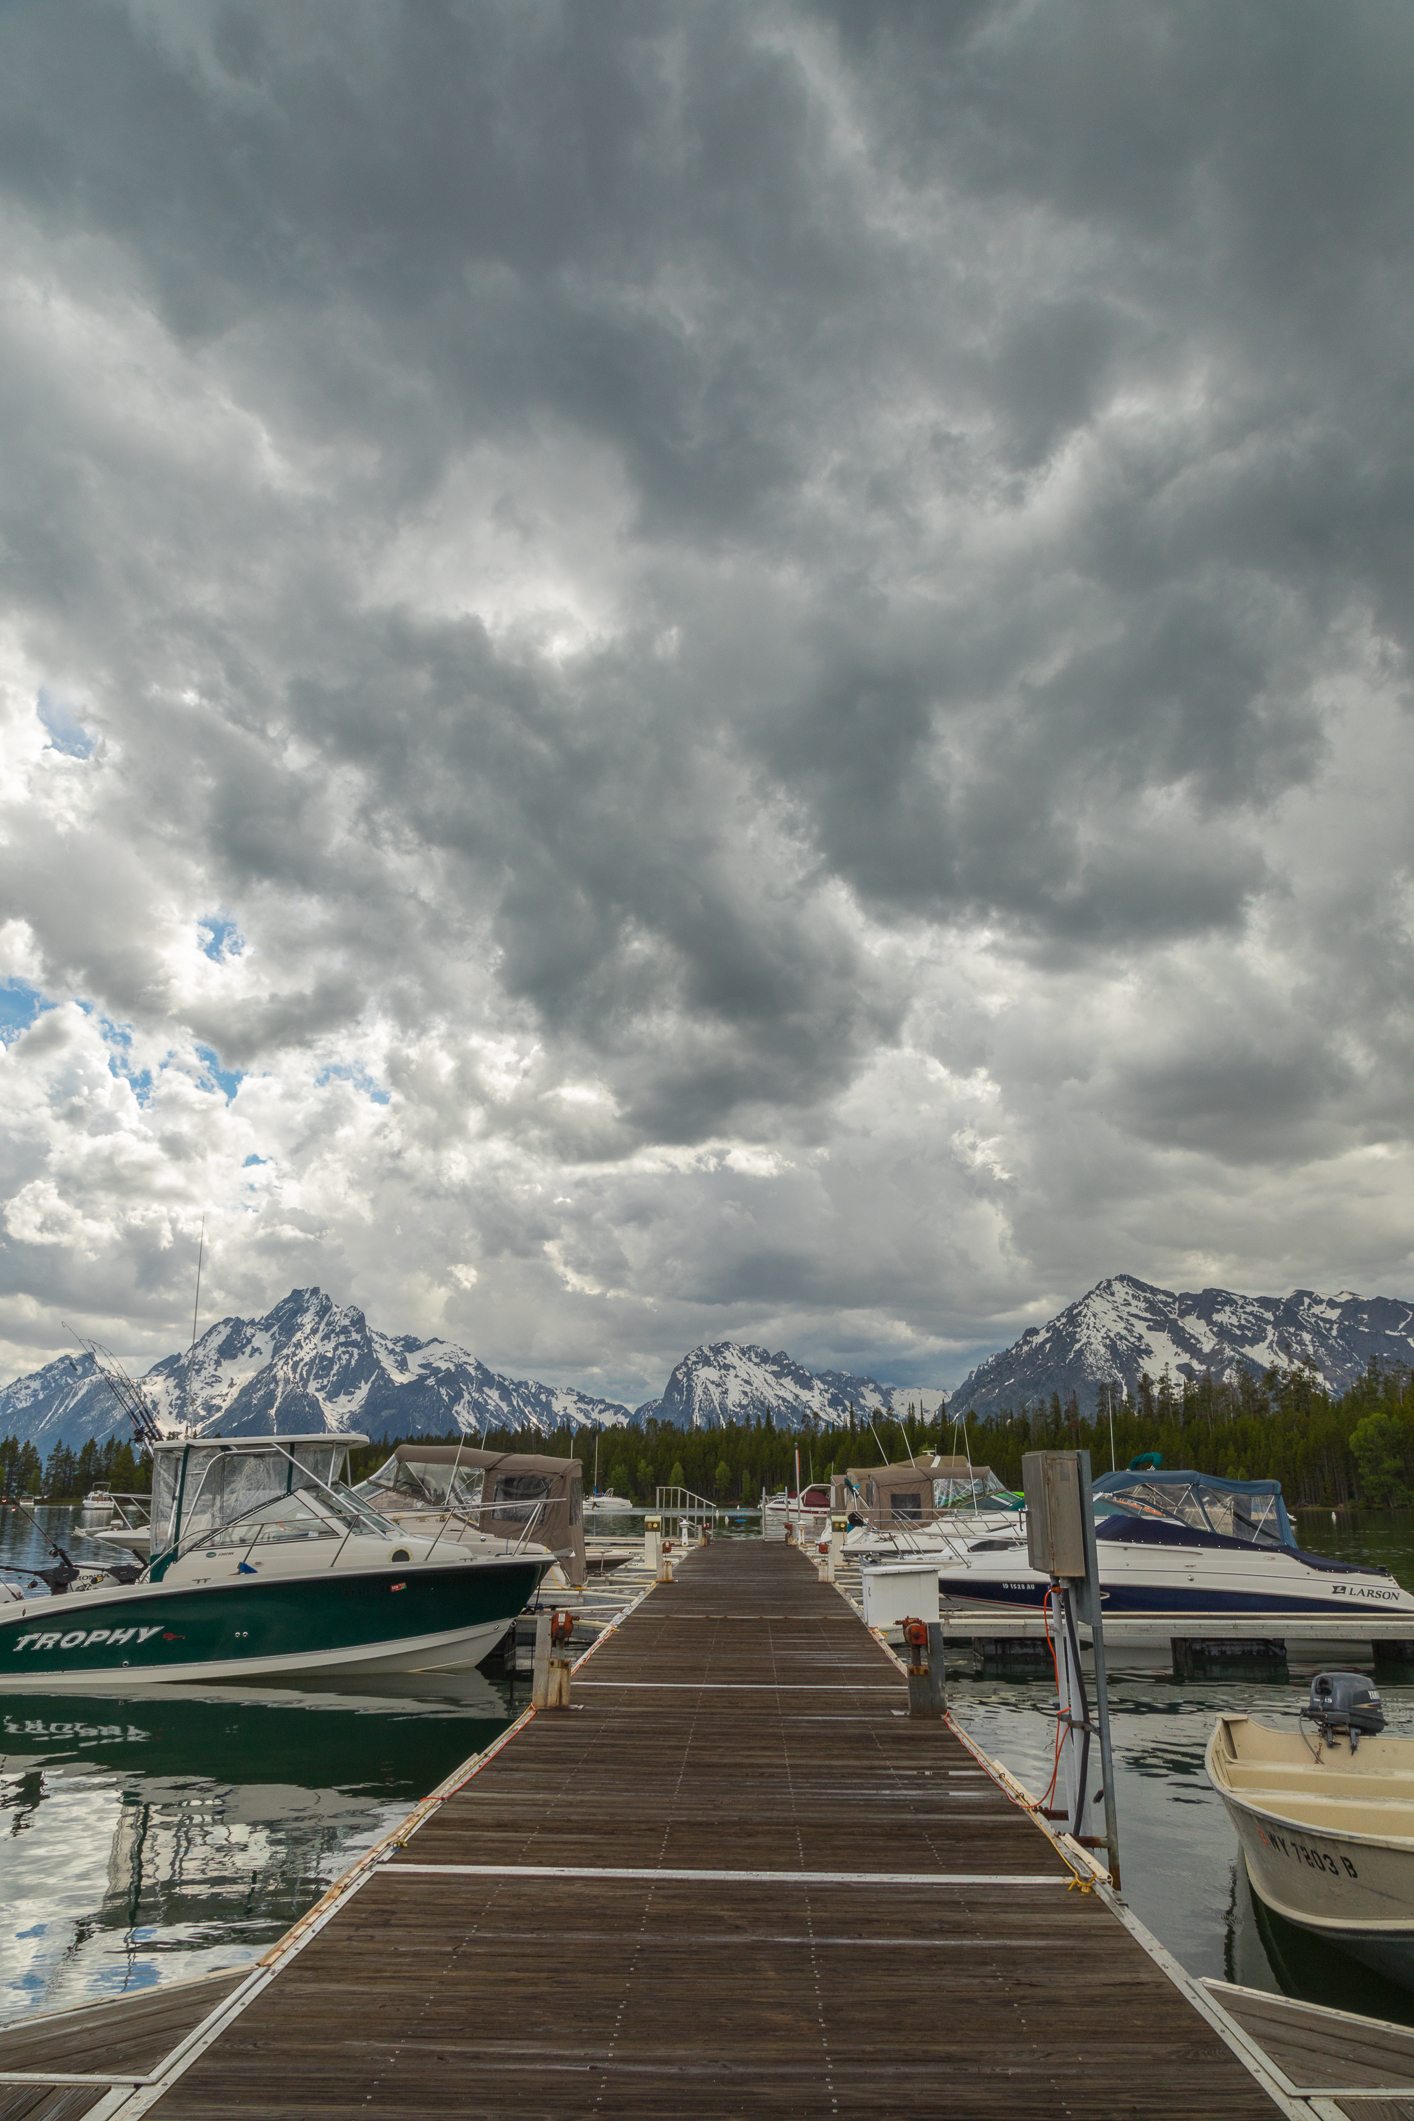 Colter Bay, Image # 3398